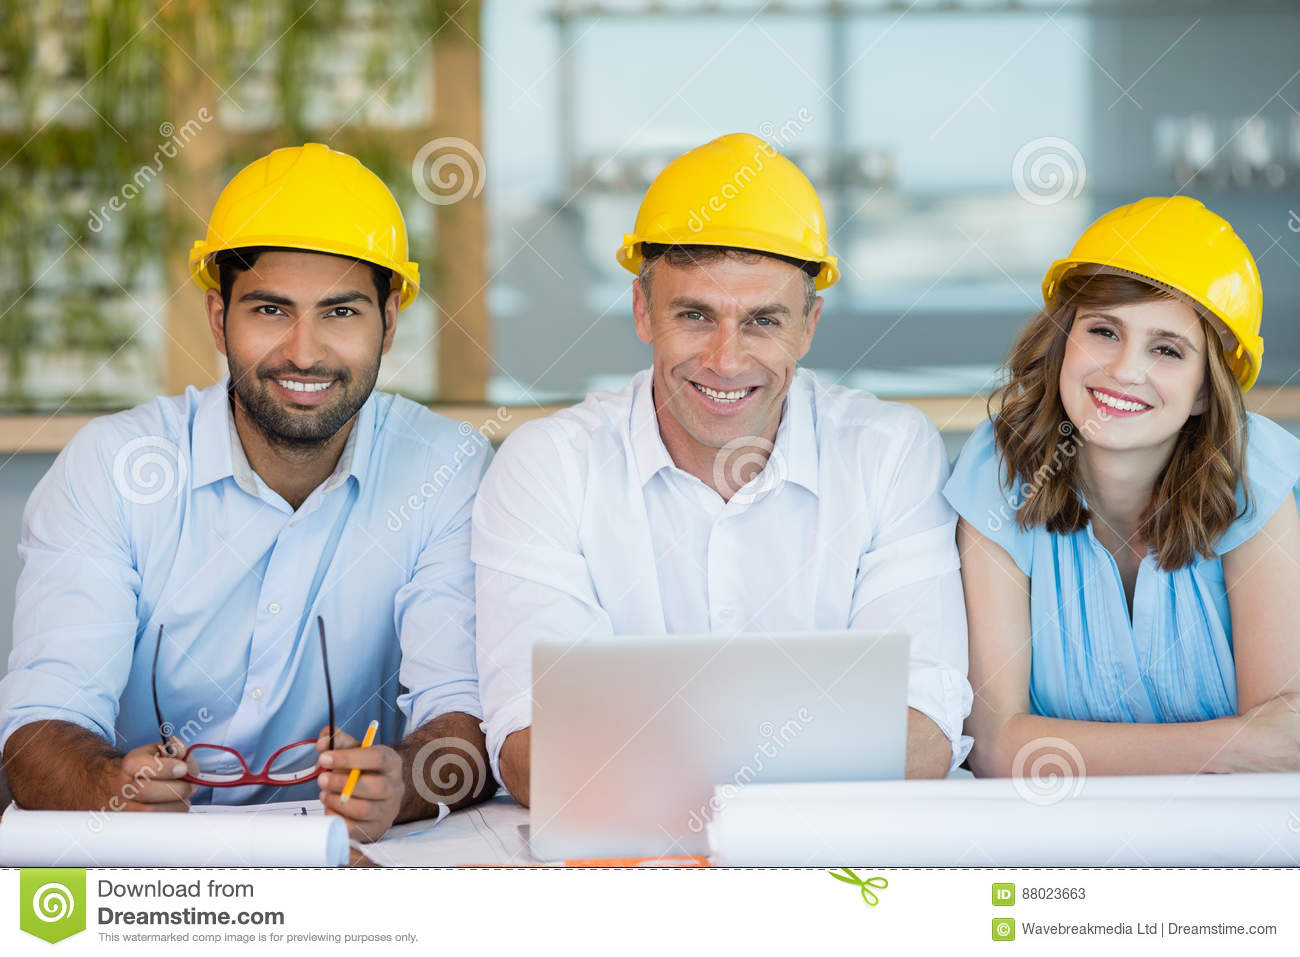 Smiling architects sitting together in conference room